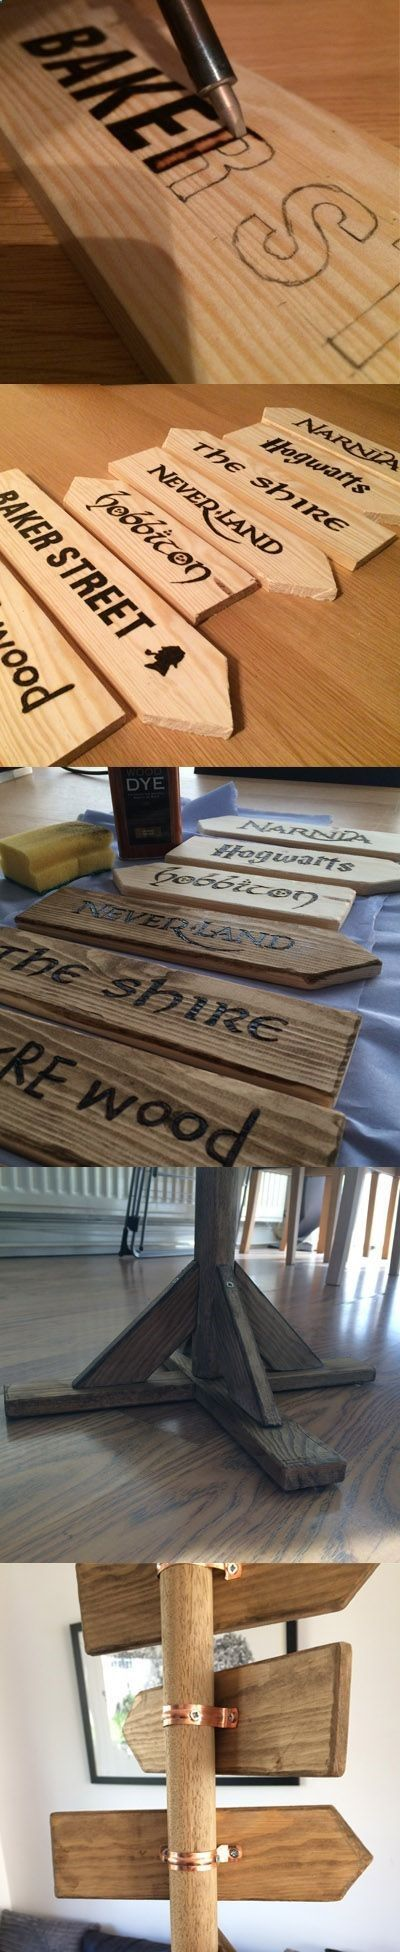 Teds Wood Working – The Fantasy Road Sign for the Garden. Which child would not like to travel to Hogwarts, Narnia or Neverland? (Cool Ar …